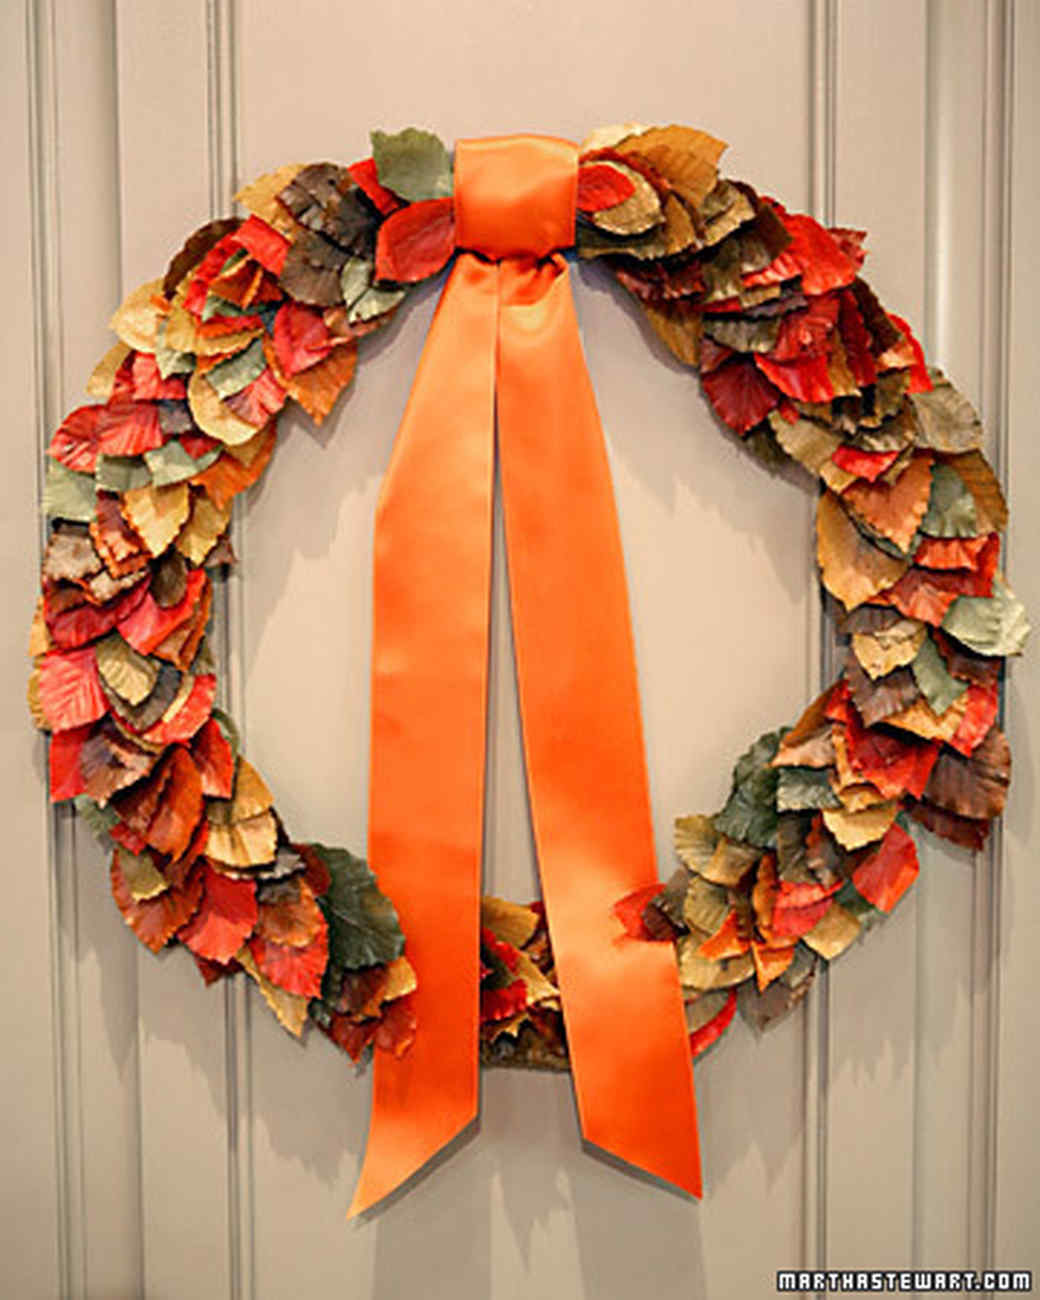 30 fall decor crafts to feel warm and cozy at home martha stewart - Diy Fall Decor